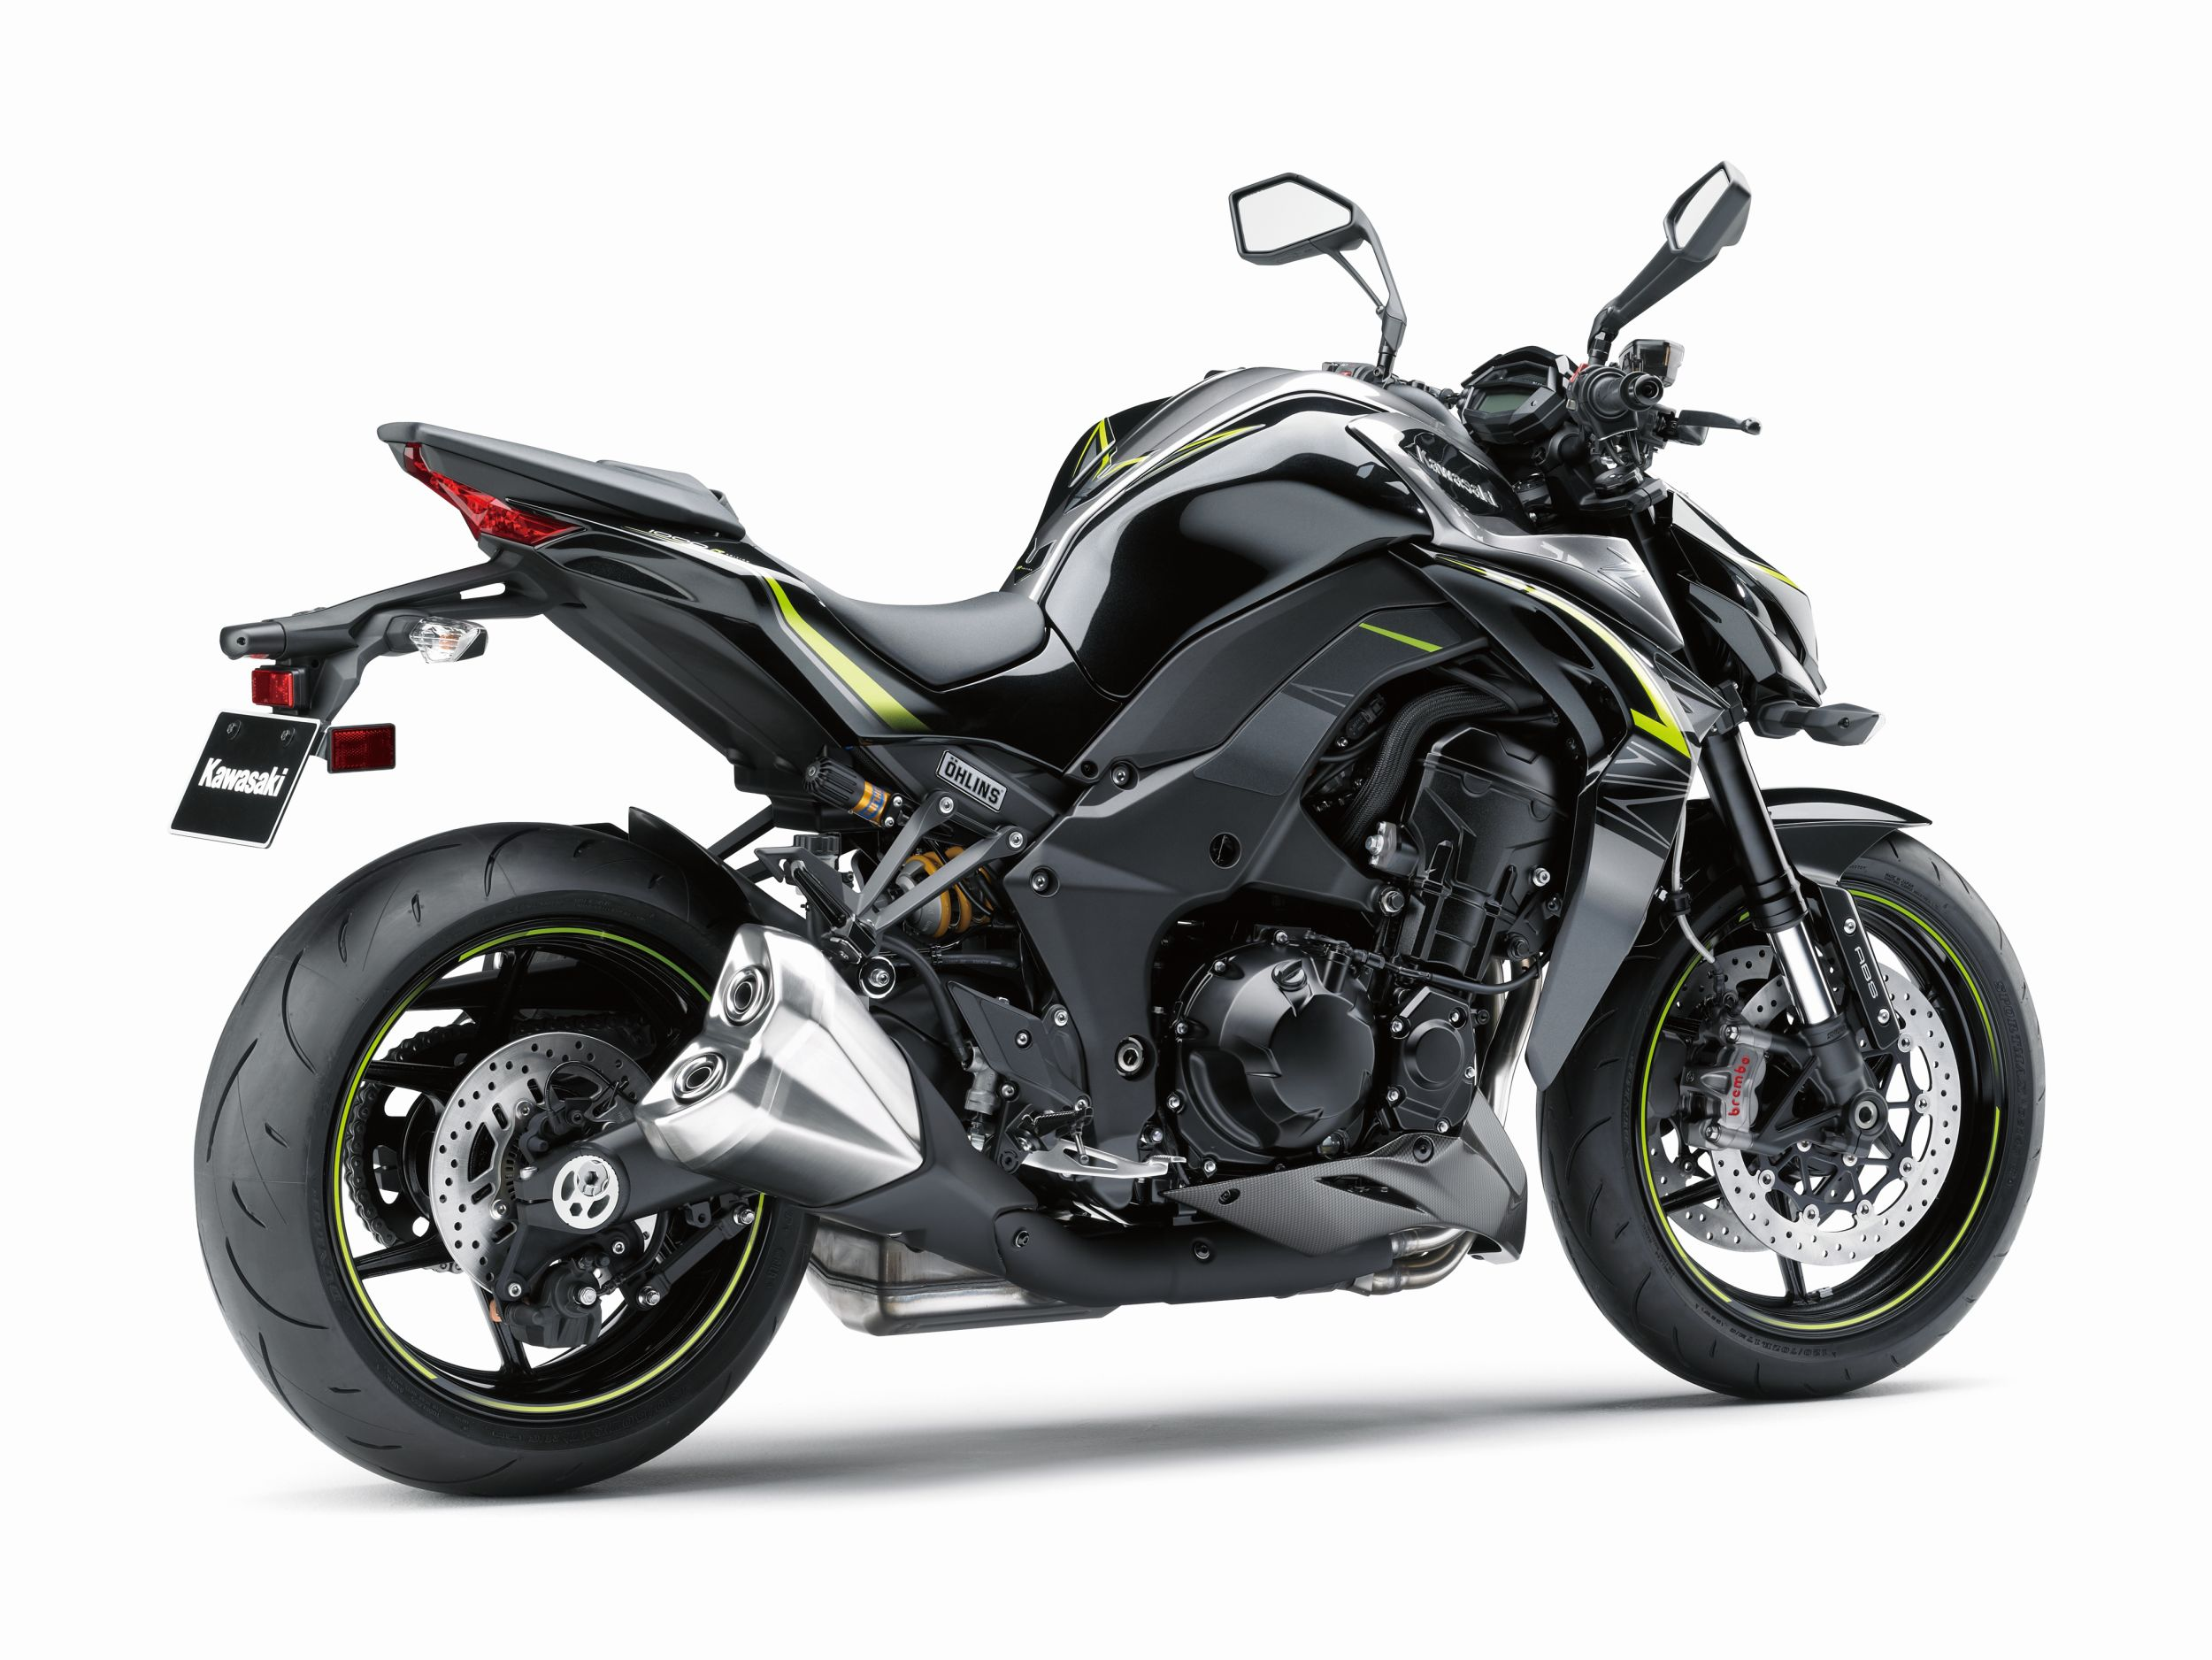 kawasaki z1000 r alle technischen daten zum modell z1000 r von kawasaki. Black Bedroom Furniture Sets. Home Design Ideas